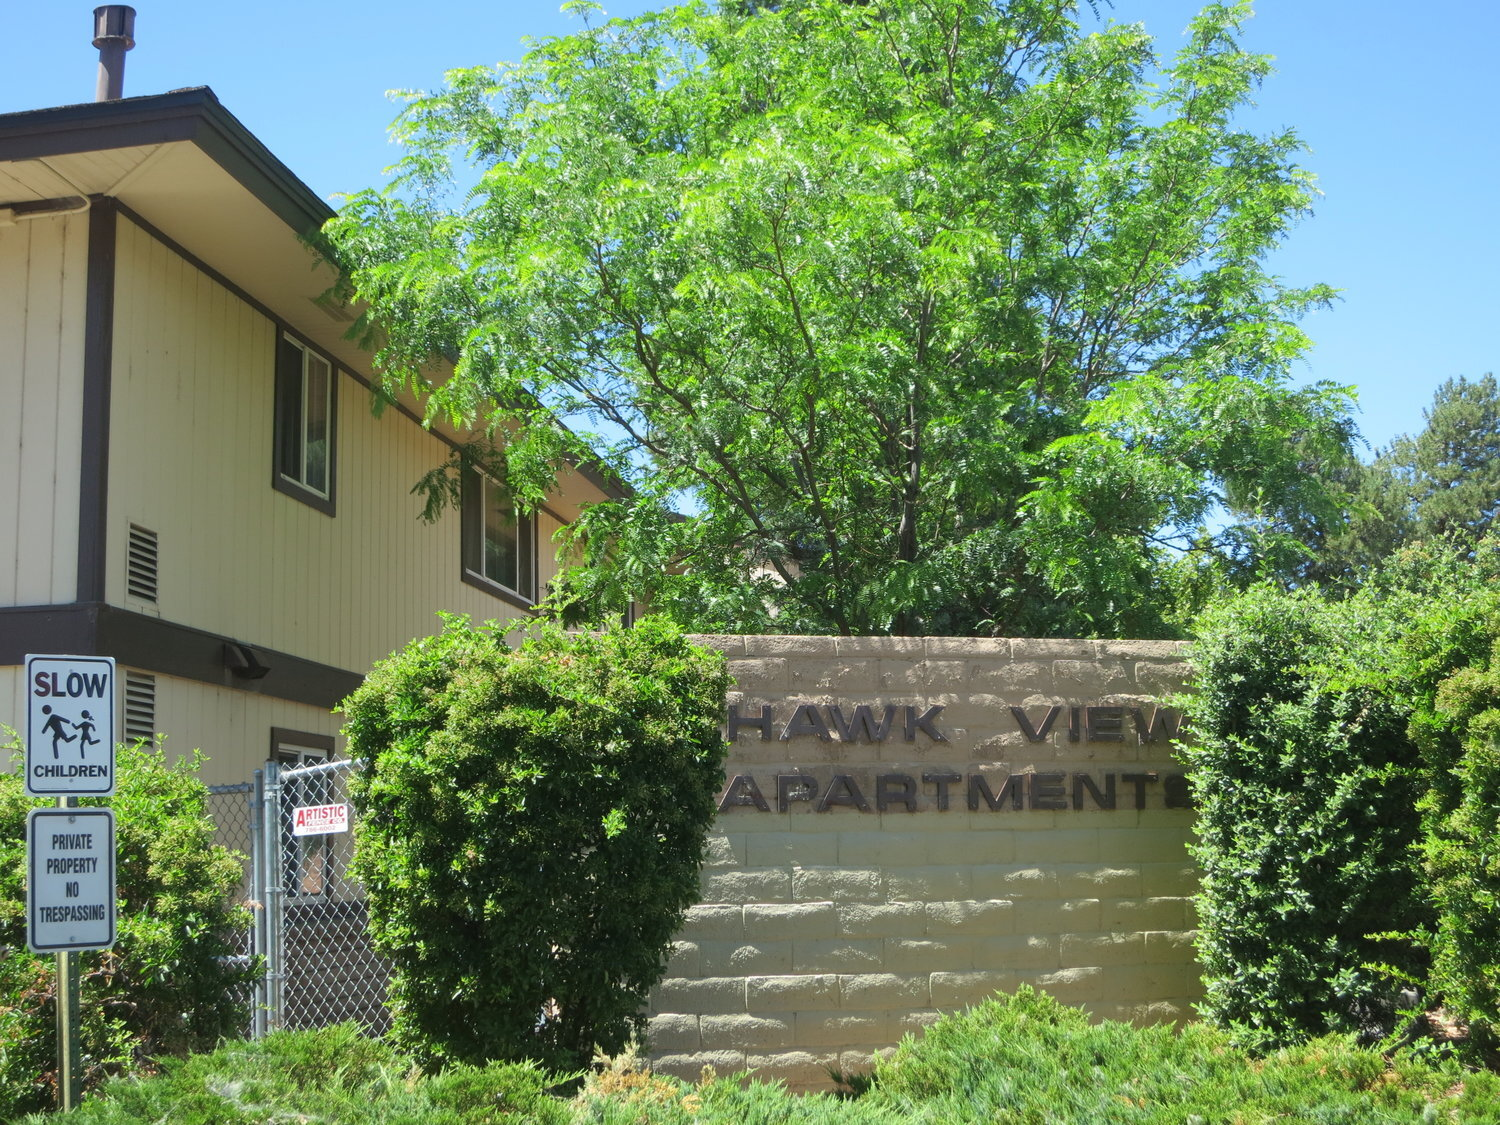 Some residents find subsidized housing such as here at the Hawk View Apartments, but others say they are being pushed out of Reno.